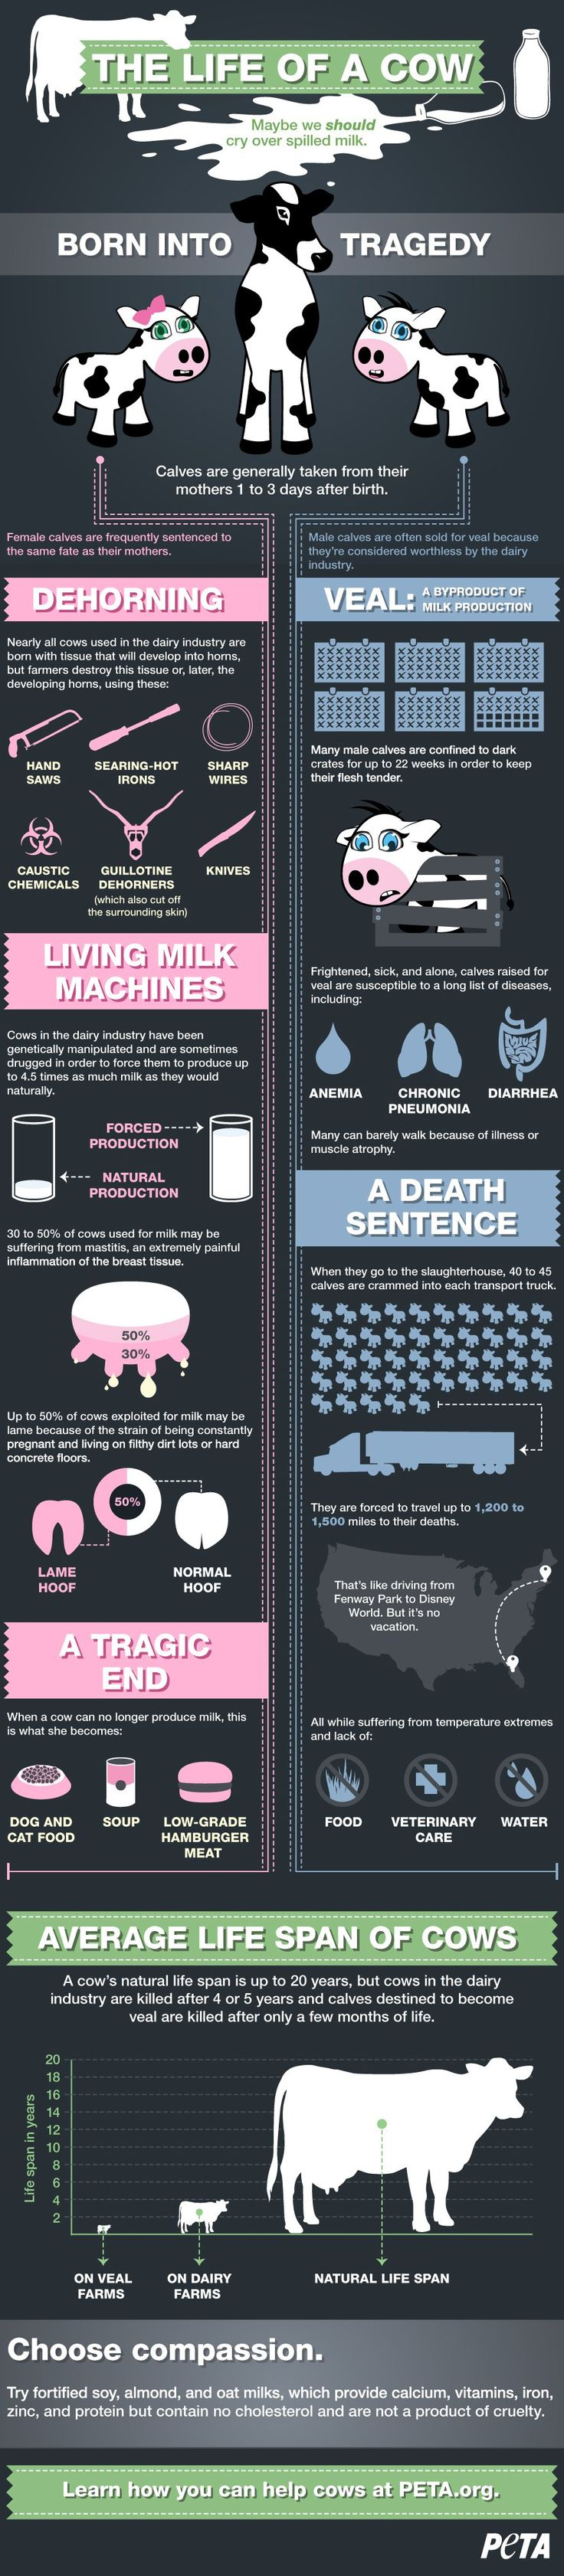 What secrets are dairy farmers keeping from you? Find out the cruelty cows endure on dairy farms in our infographic.